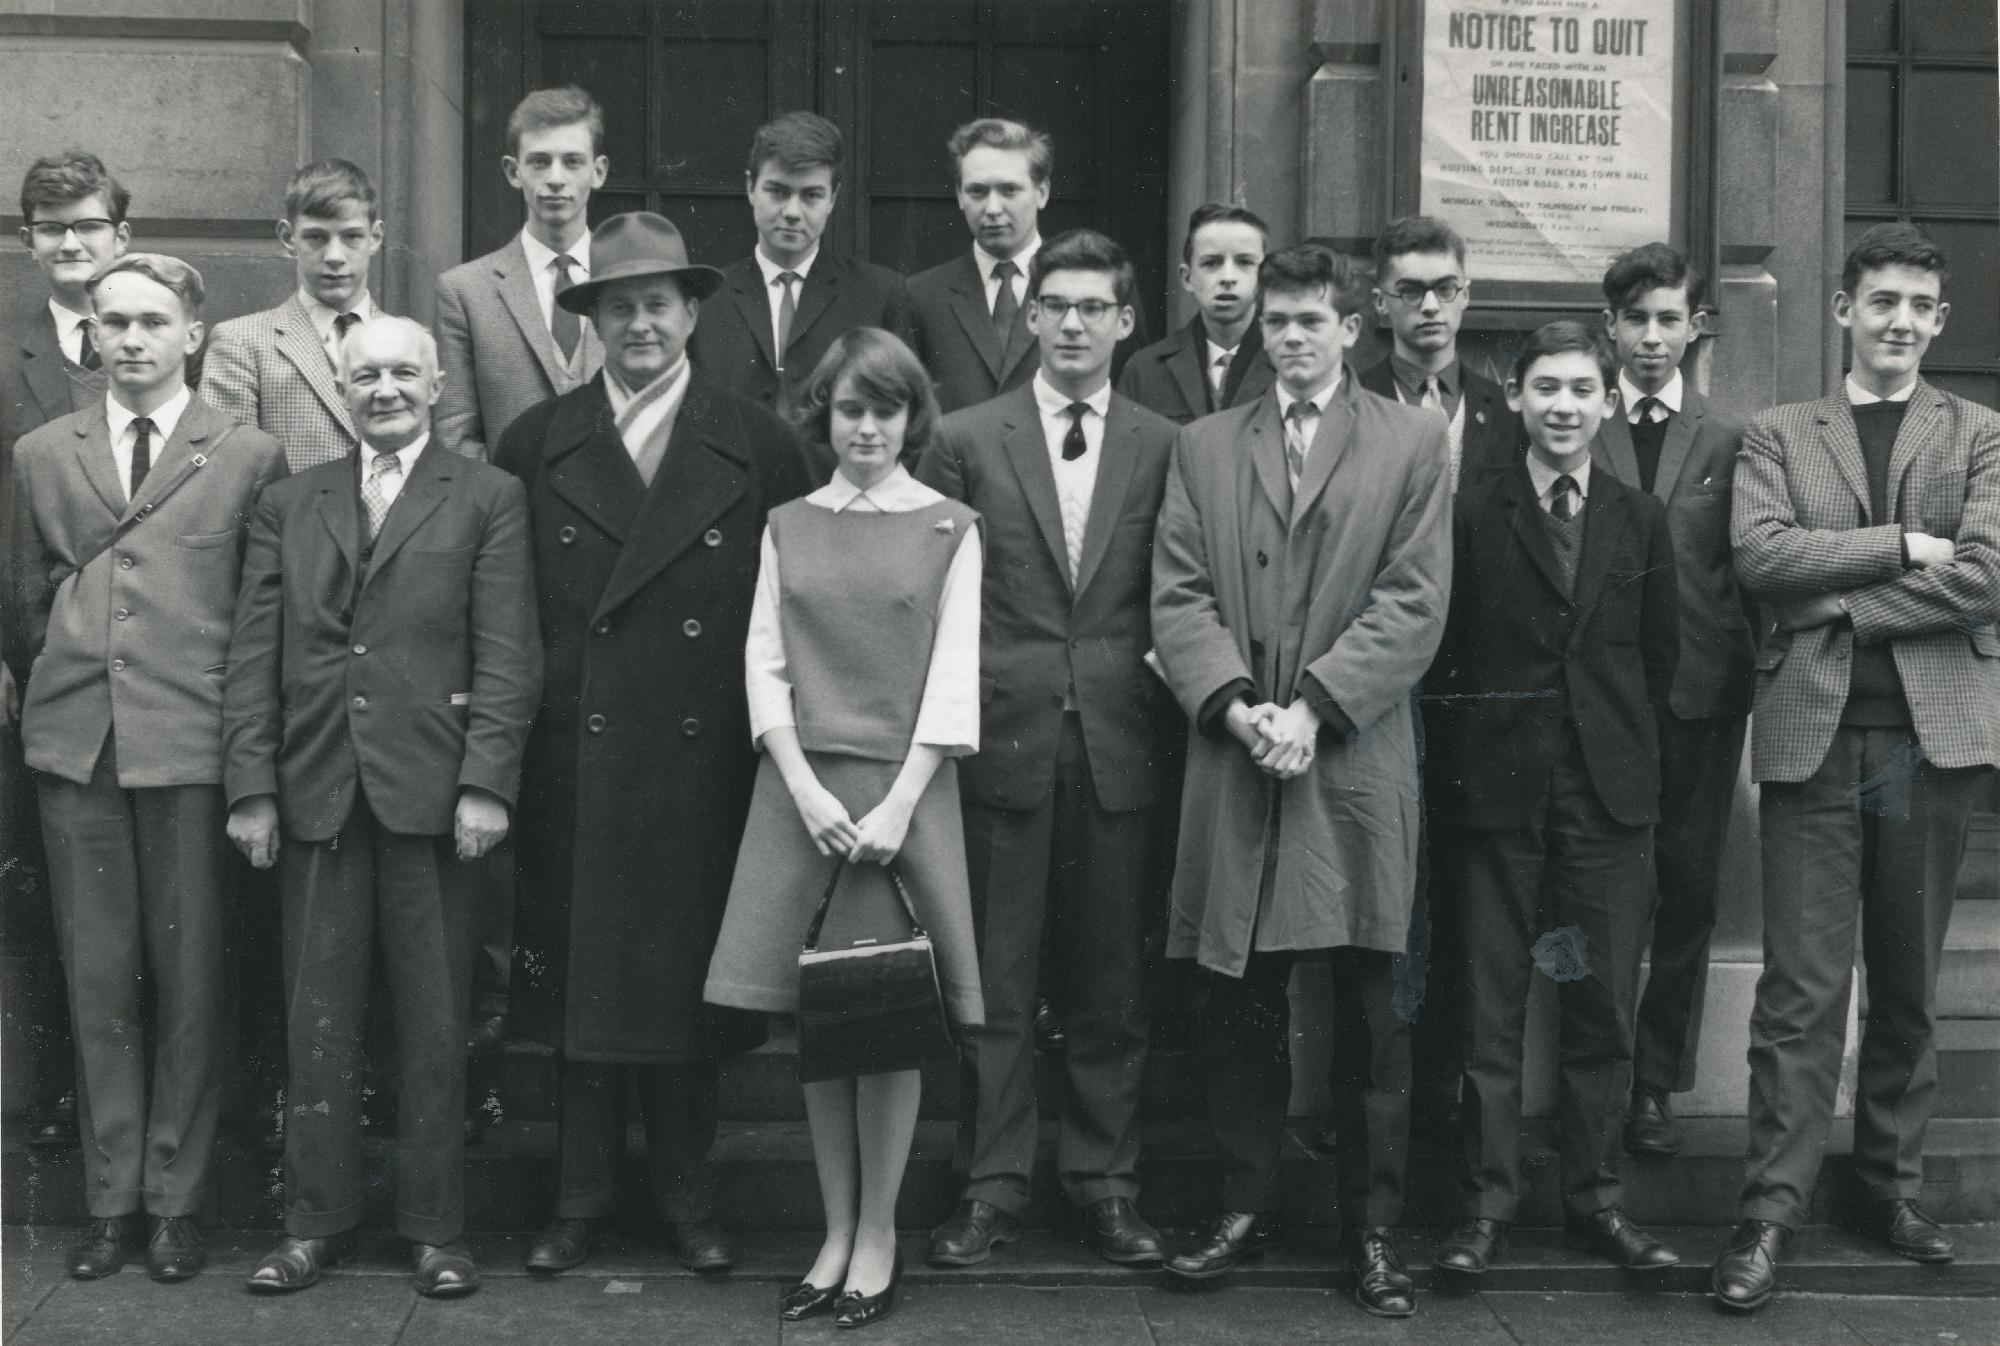 Some of the participants in the Paul Keres  display on November 25th, 1962, at St Pancras Town Hall, London WC1. Back row : AJ. Whiteley, D. Floyer, PJ Collins, PJ Adams, RC Vaughan, KB Harman, D. Parr, DNL Levy, Front row : MV Lambshire, AE Hopkins (selector) Paul Keres, Miss D. Dobson, RE Hartley, BC Gillman, WR Hartston  and PN Lee. Photograph by AM Reilly. Source : BCM, 1963, page 13